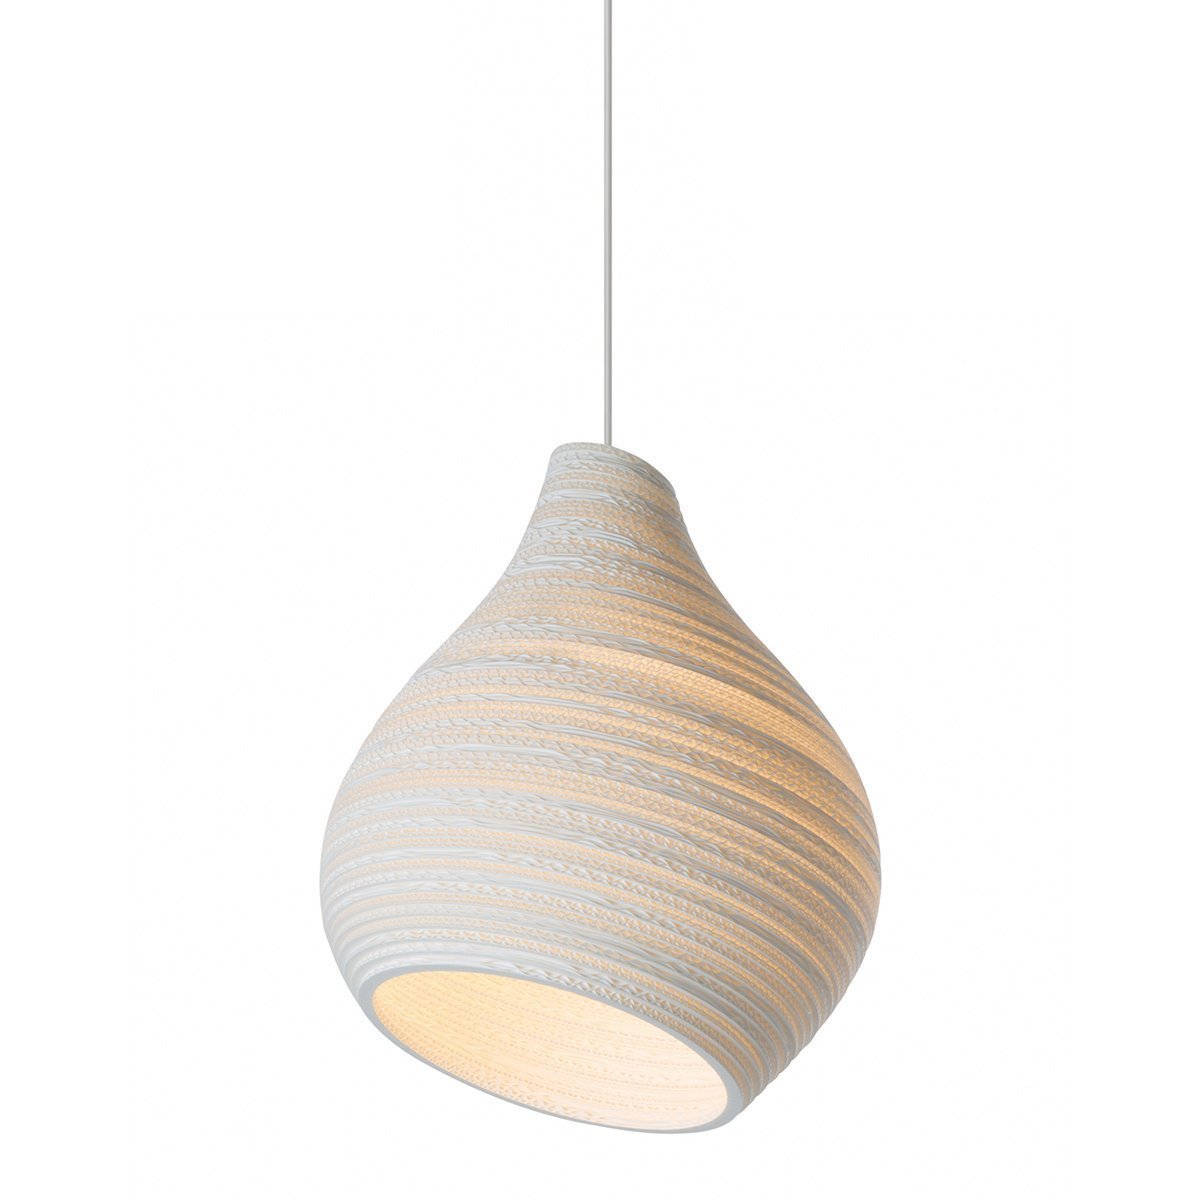 Graypants Hive Hanglamp Small - Wit